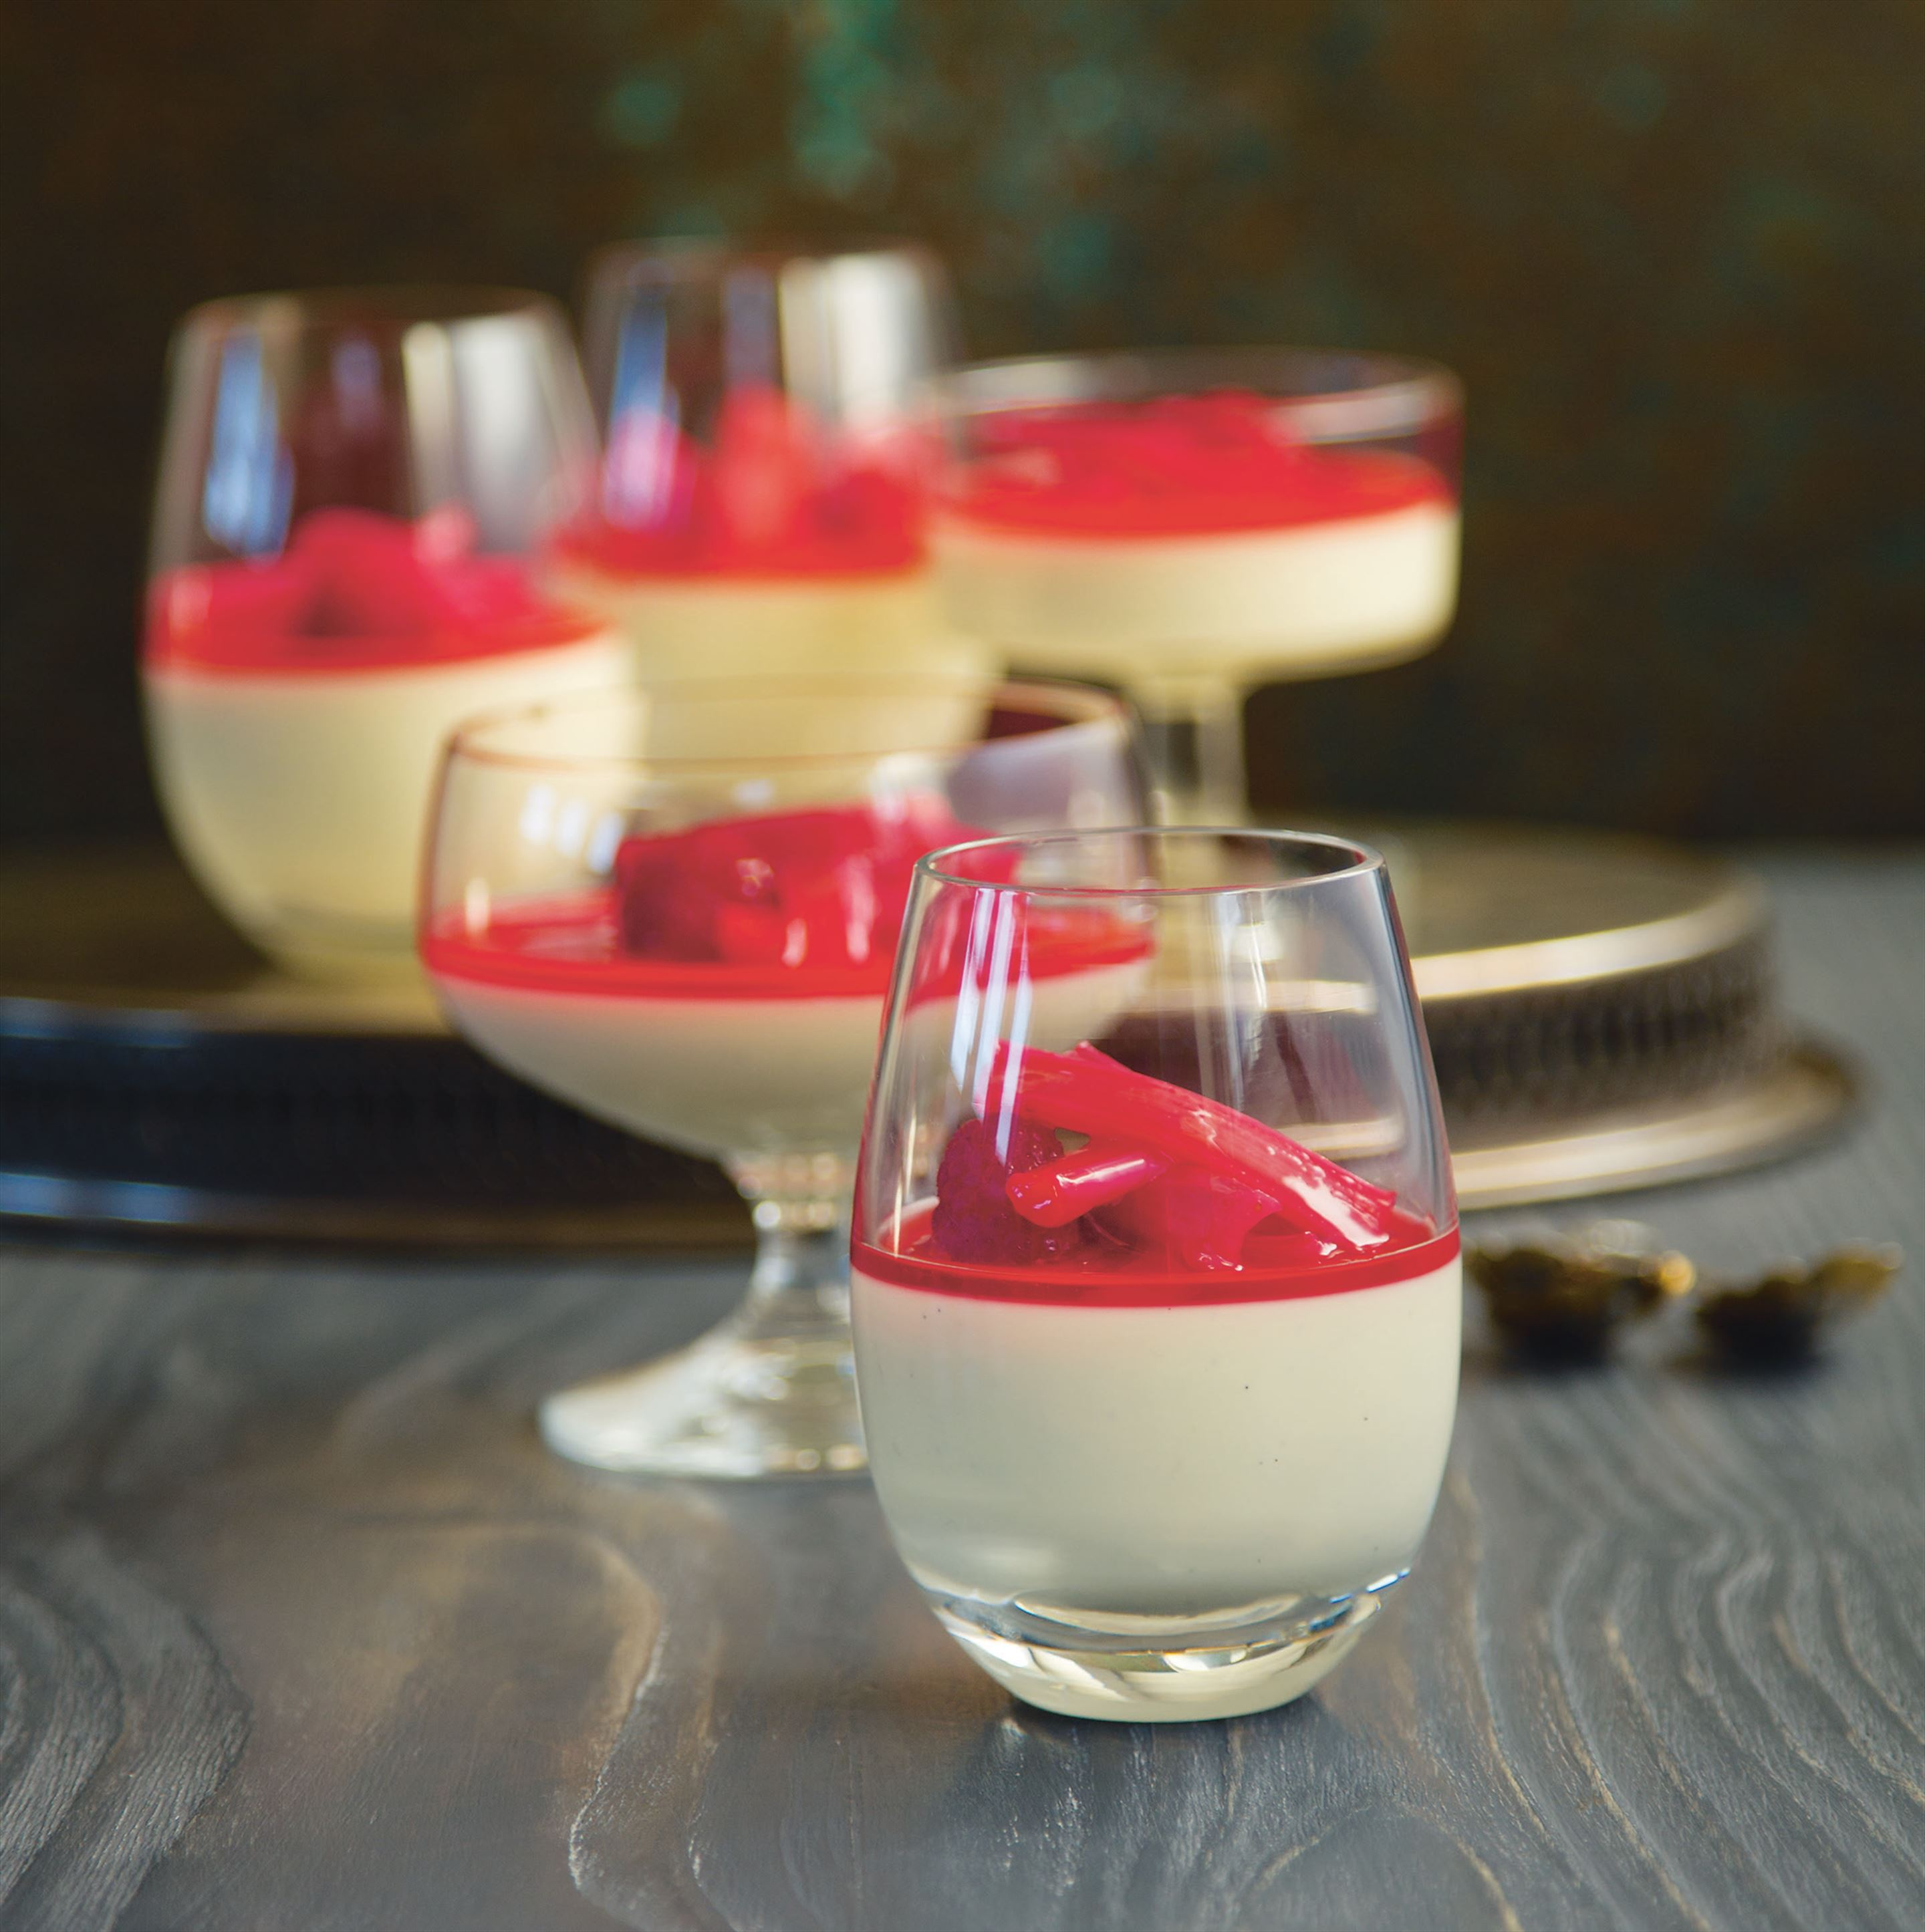 Mini lemon panna cotta pots with rhubarb and raspberries